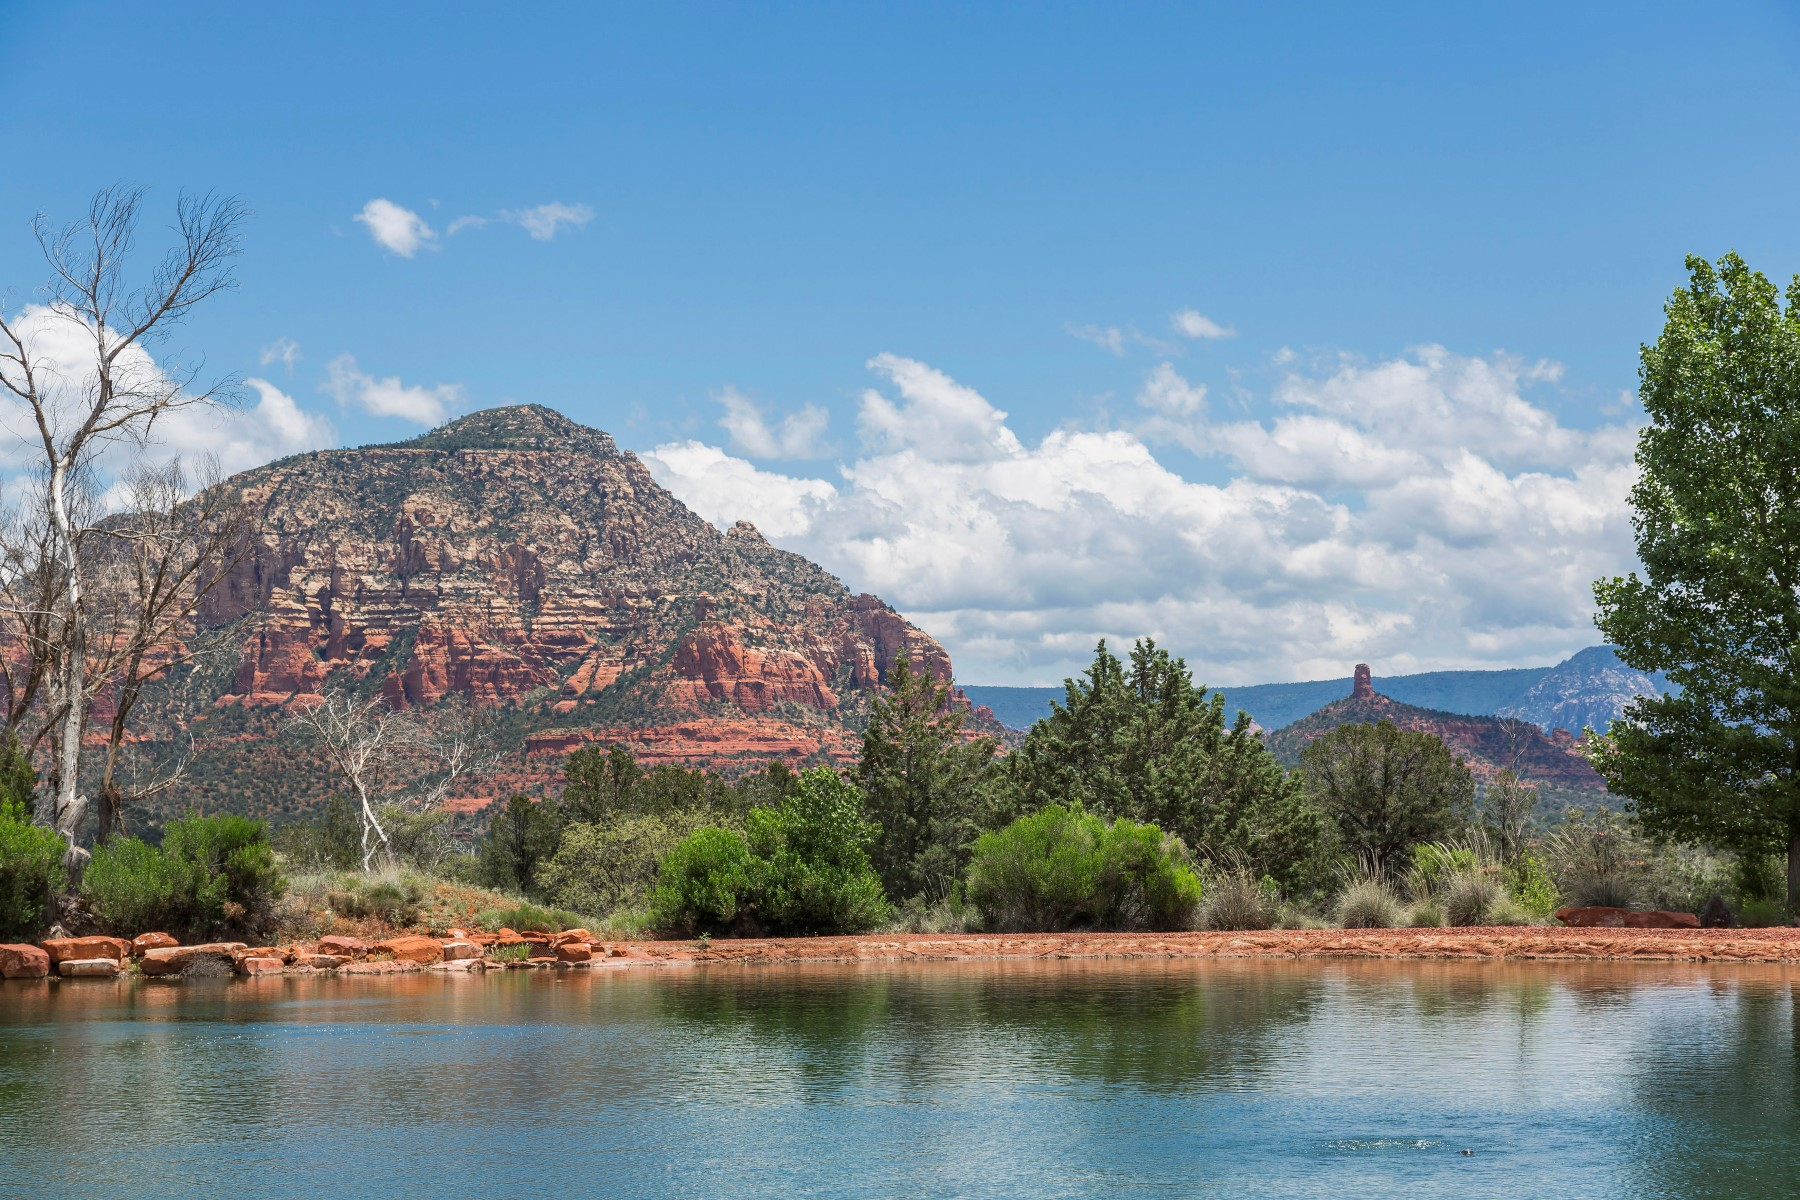 Land for Sale at Aerie Lot 22 - Central 2.17 acre lot with views of Sedona's red rocks. 90 Altair AVE 22, Sedona, Arizona, 86336 United States